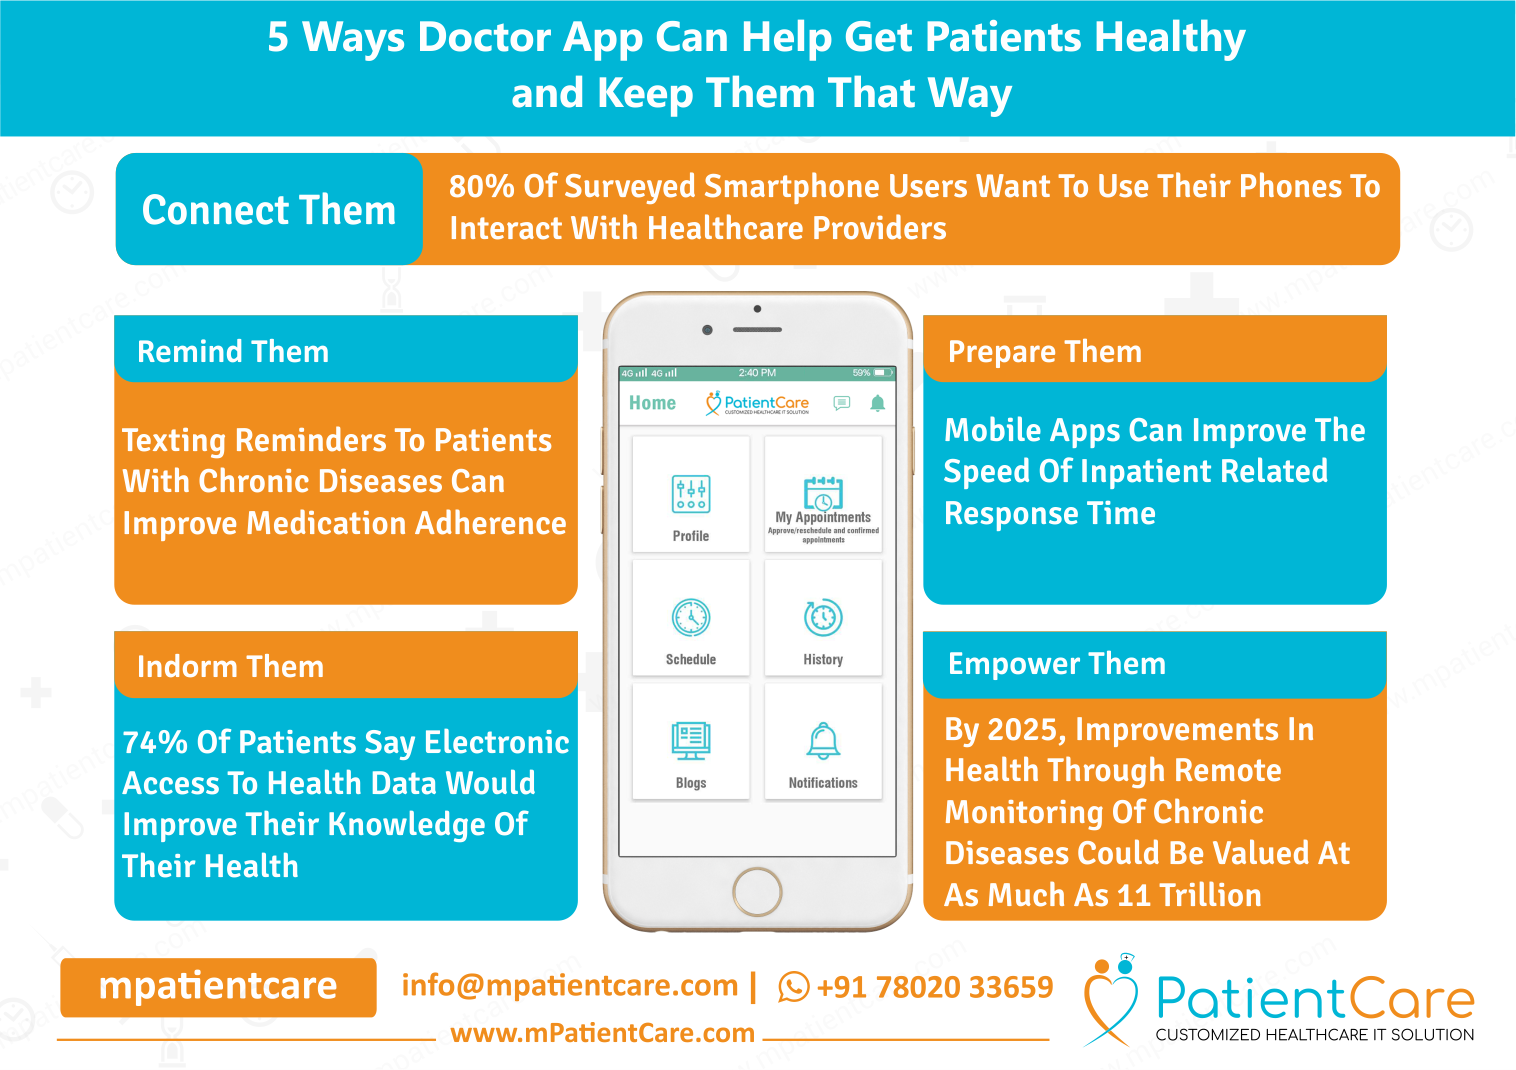 5 Way Doctor App Can Help Get Patients Healthy and Keep